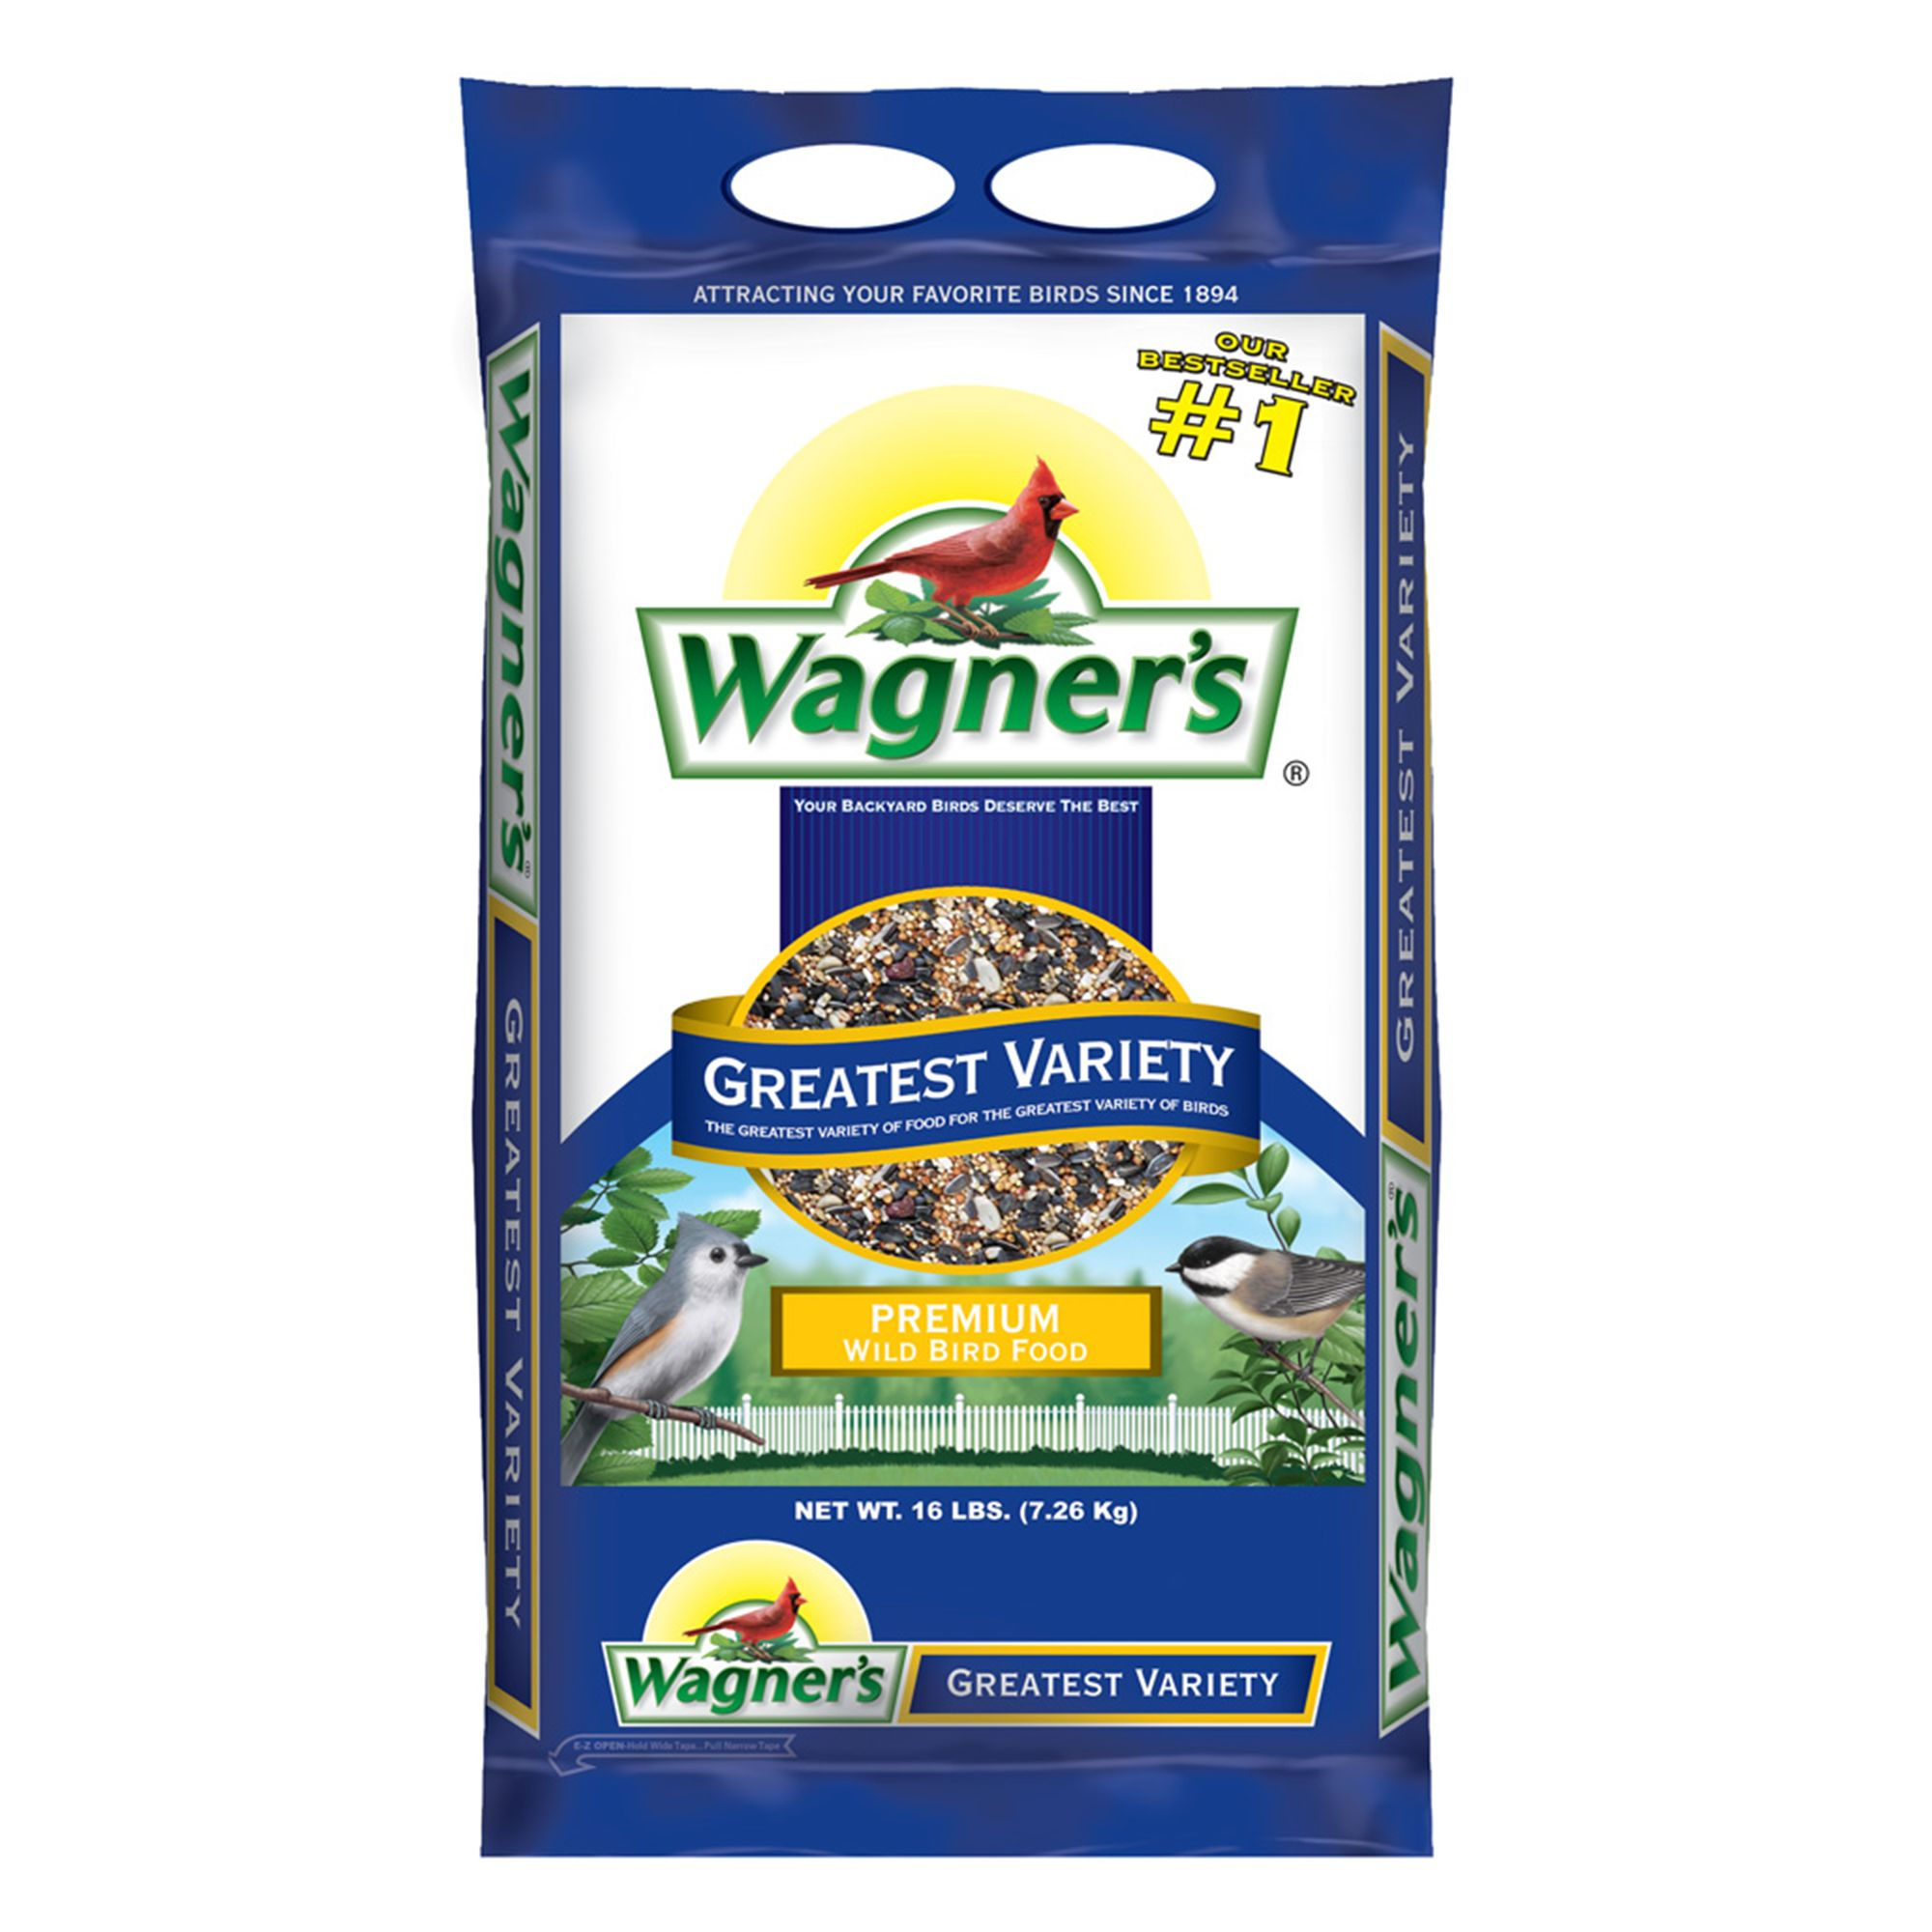 Wagner's Greatest Variety Wild Bird Seed size: 16 Lb, Wagners, Grain, Grain Products 5271543